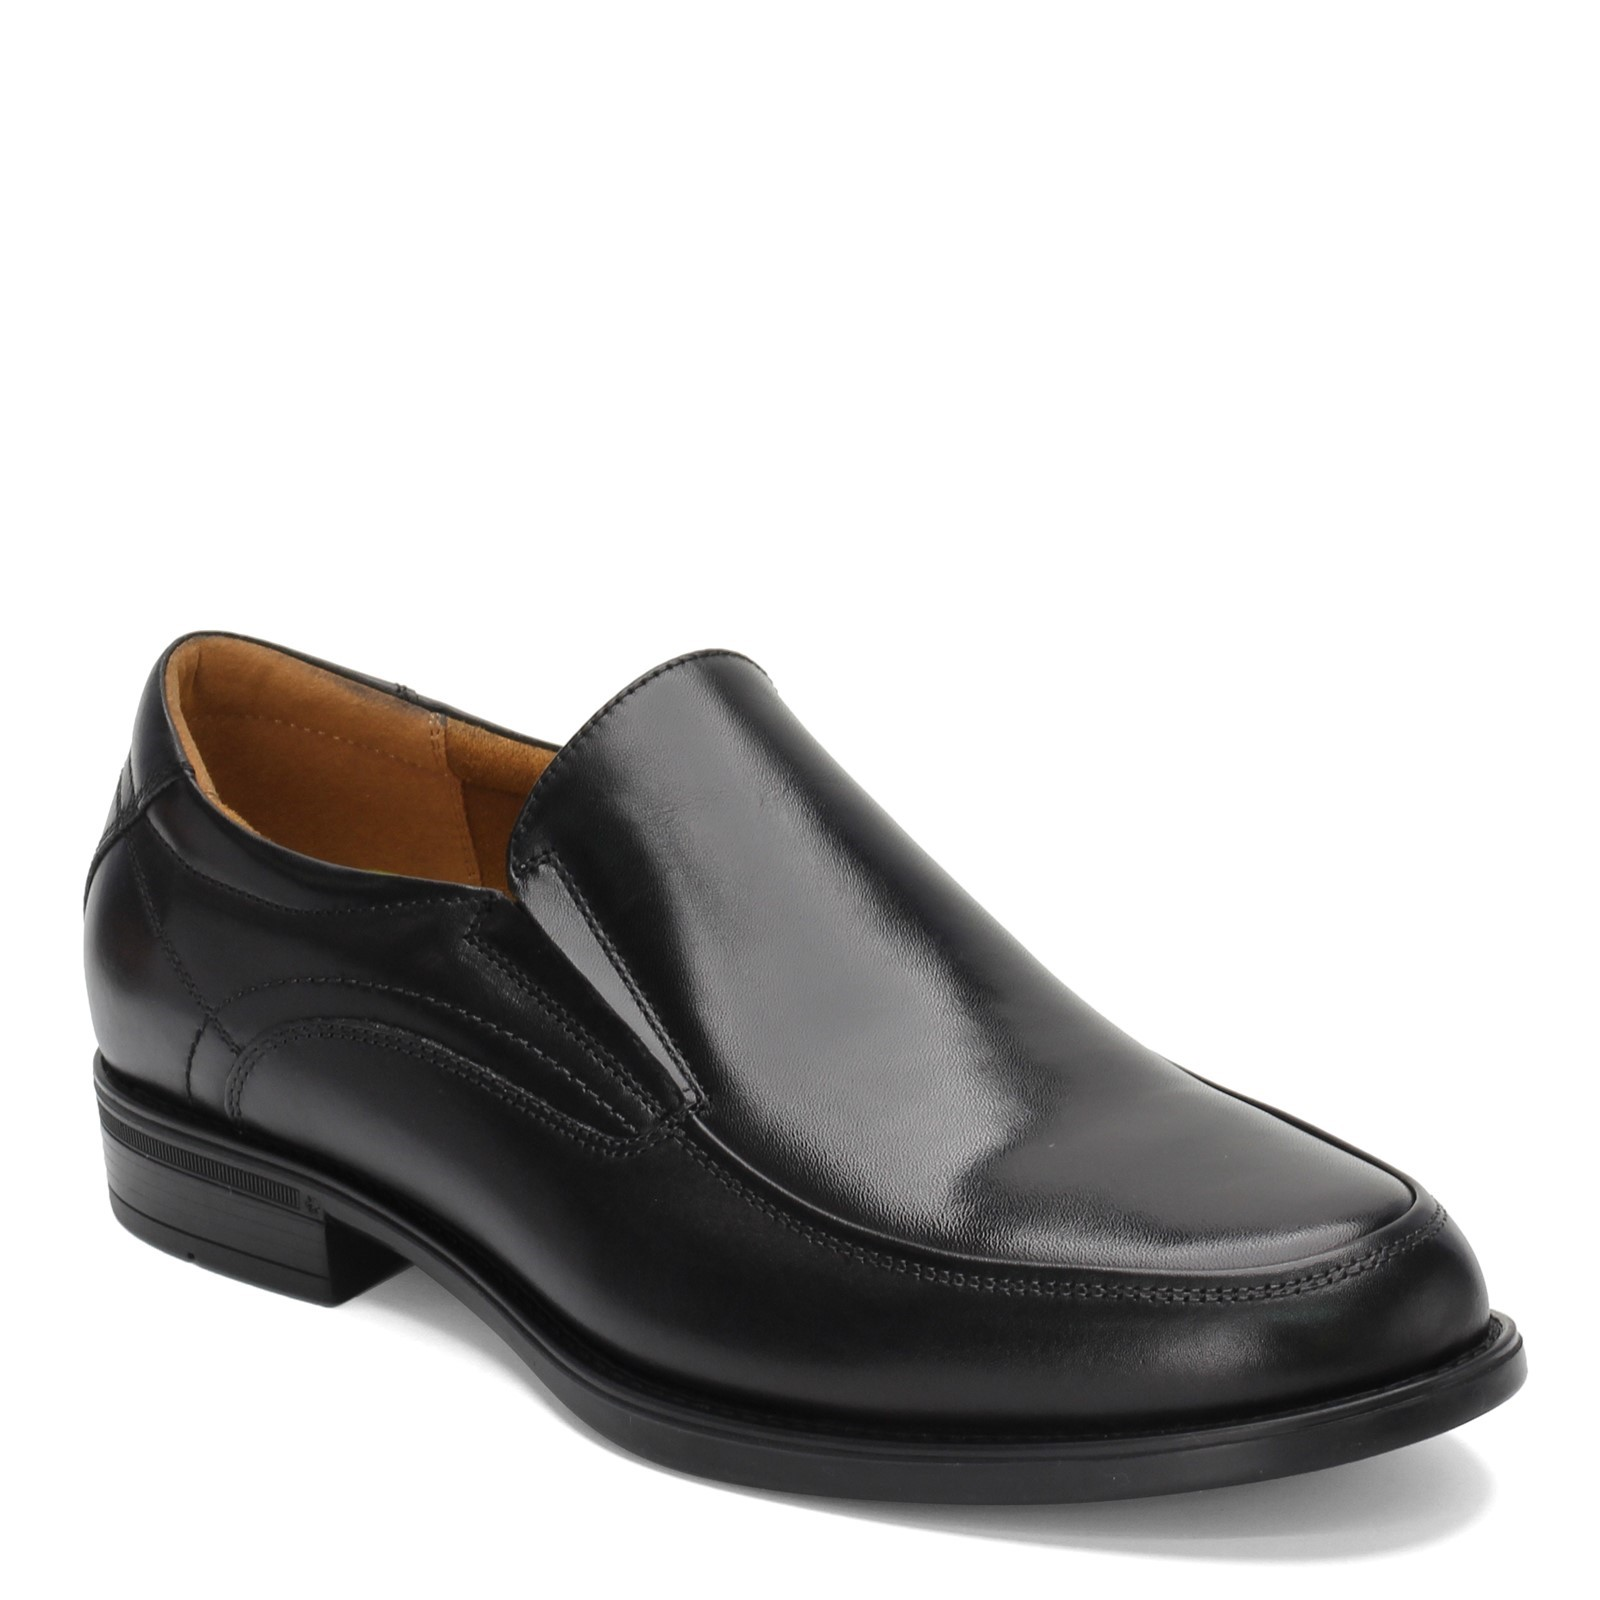 Men's Florsheim, Midtown Moc Toe Slip-On